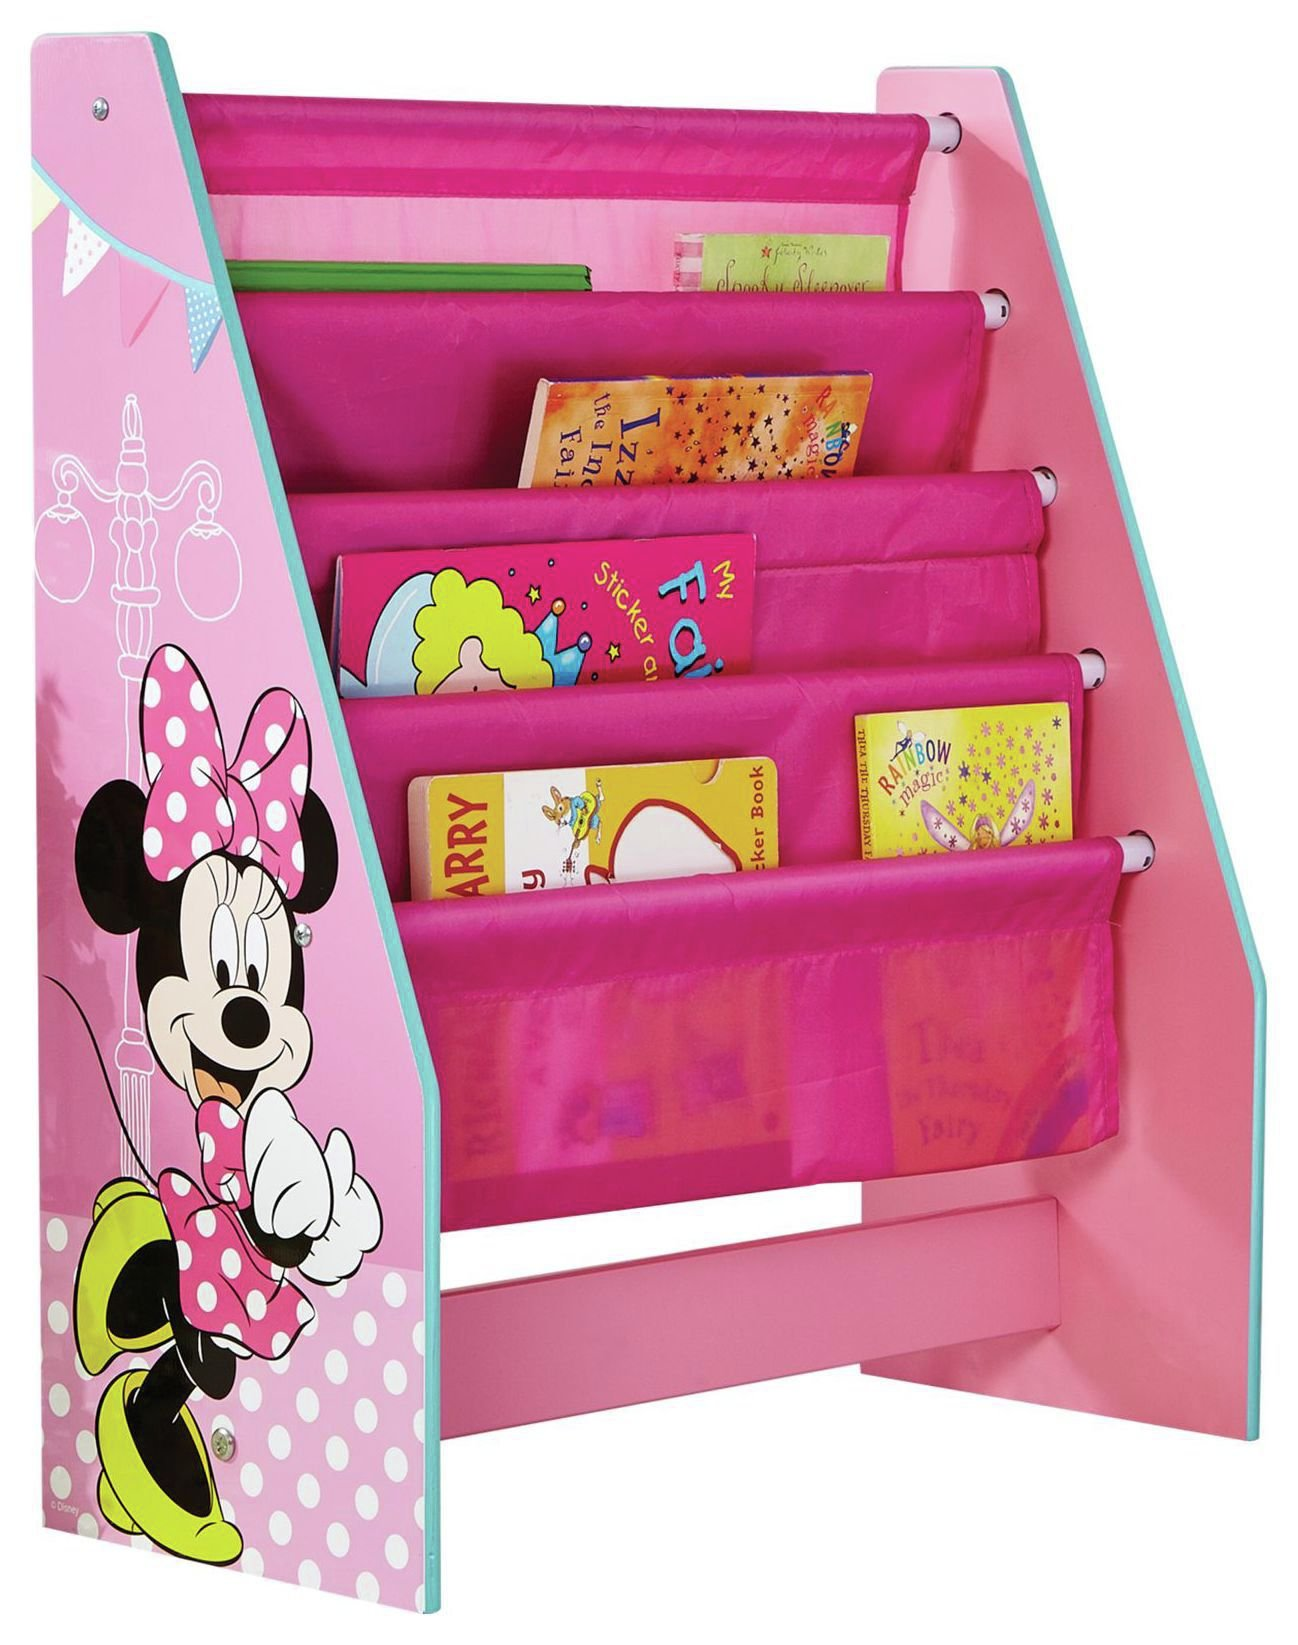 Disney Minnie Mouse Sling Bookcase at Argos review